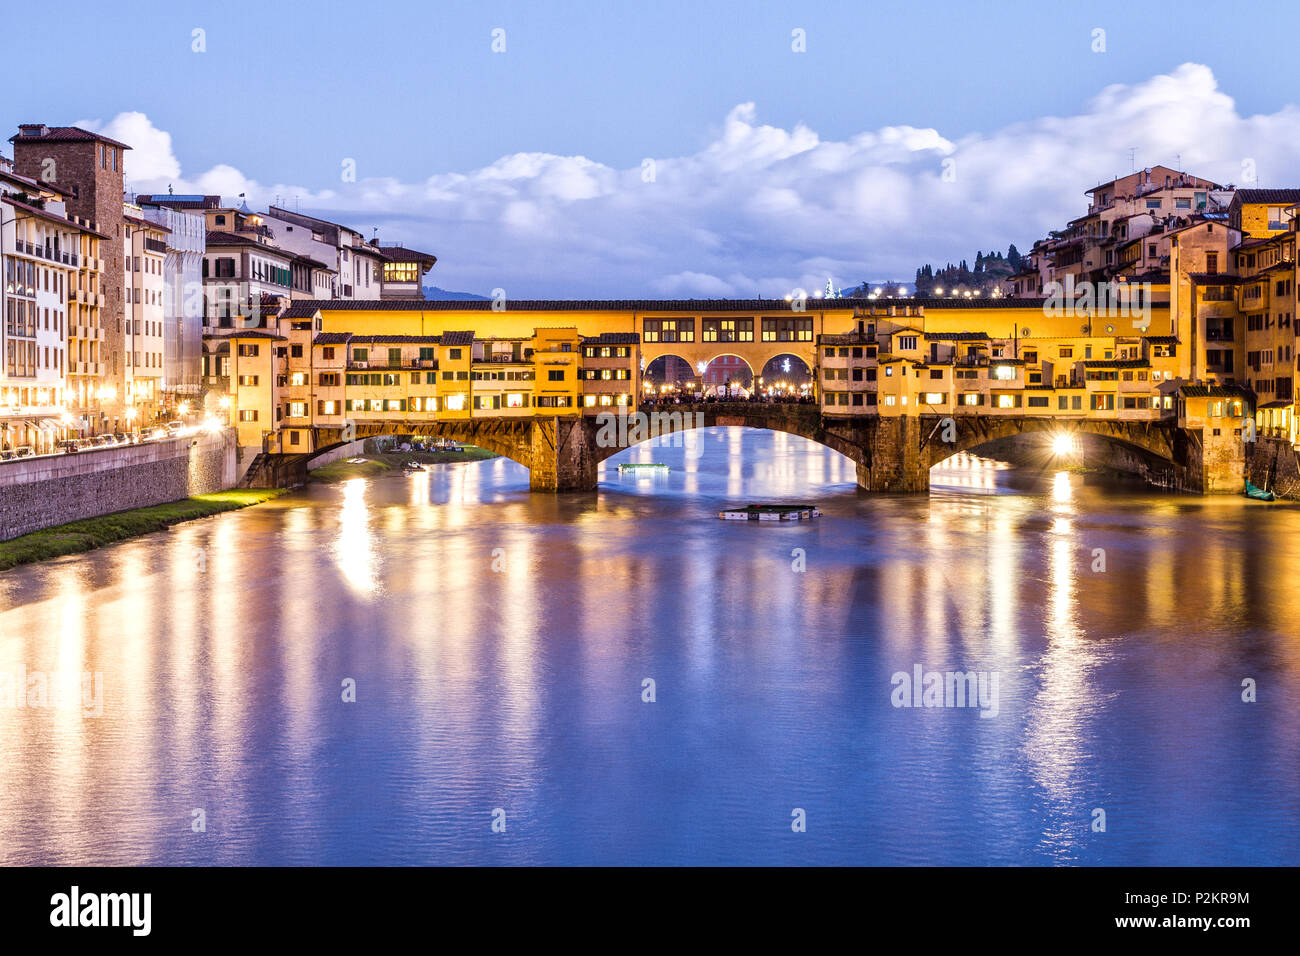 Ponte Vecchio (Old Bridge) at evening. Florence, Province of Florence, Italy. - Stock Image